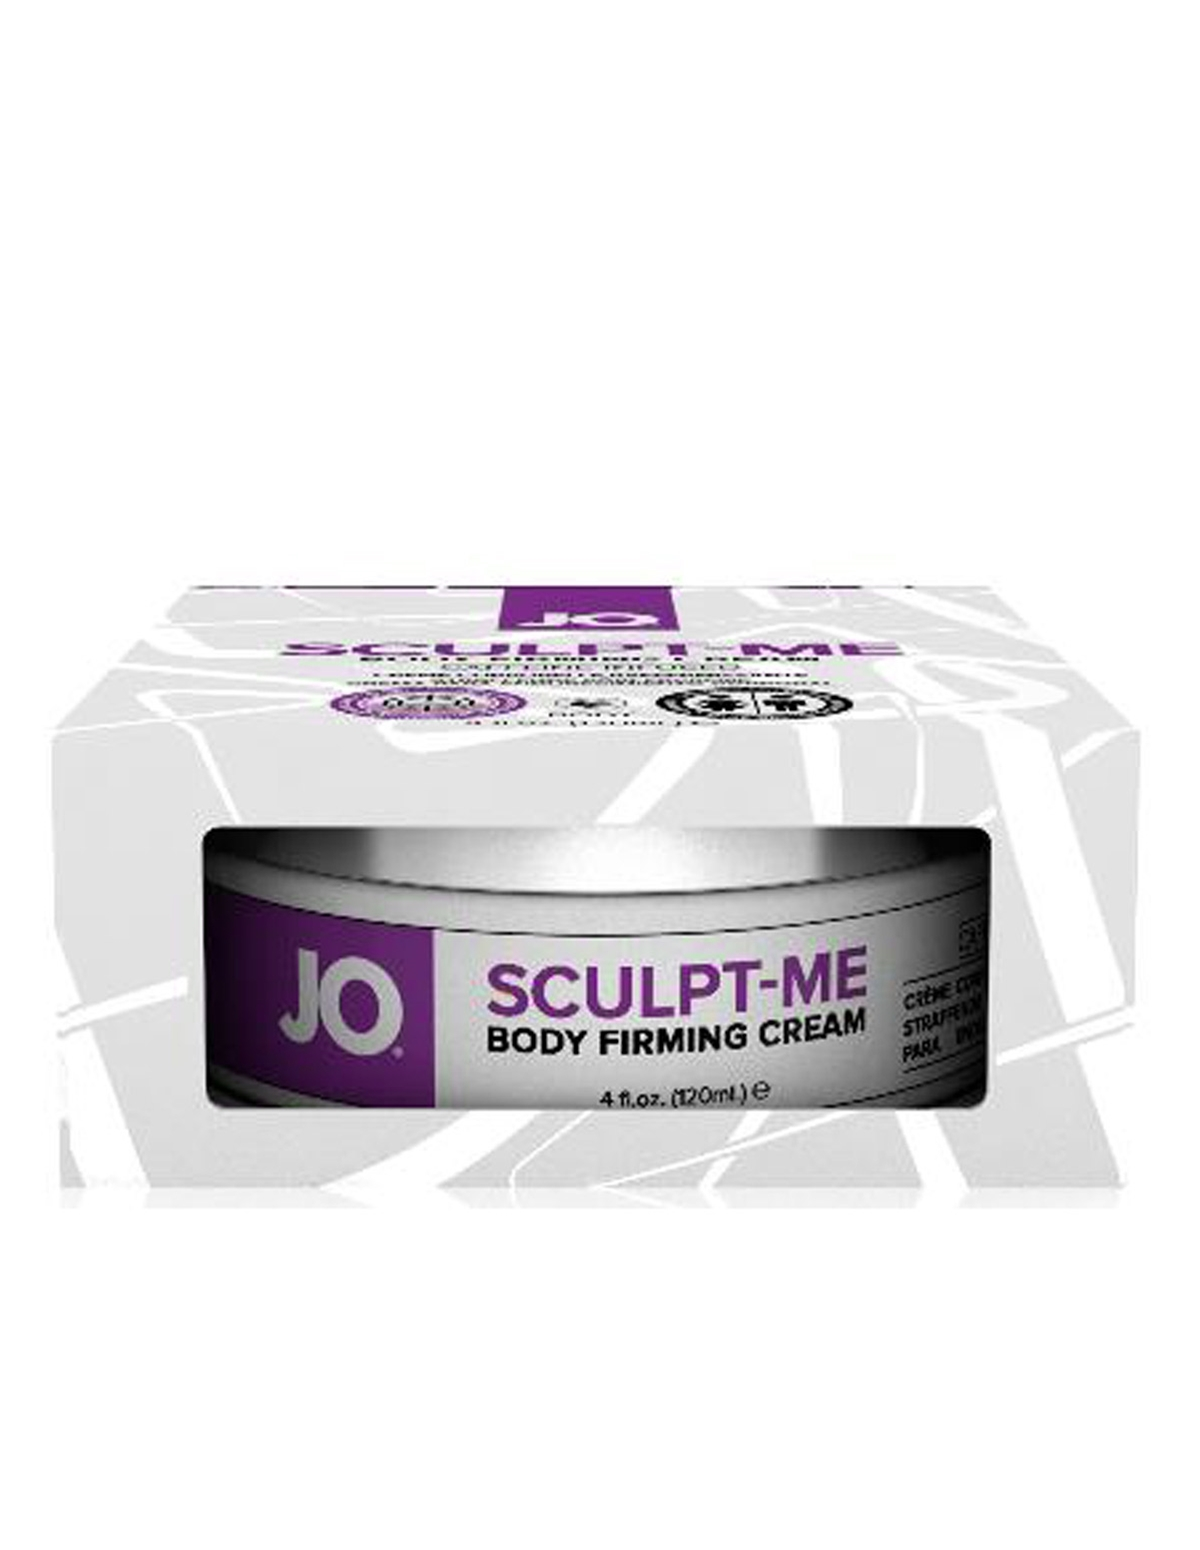 Sculpt-Me Anti-Cellulite Firming Cream